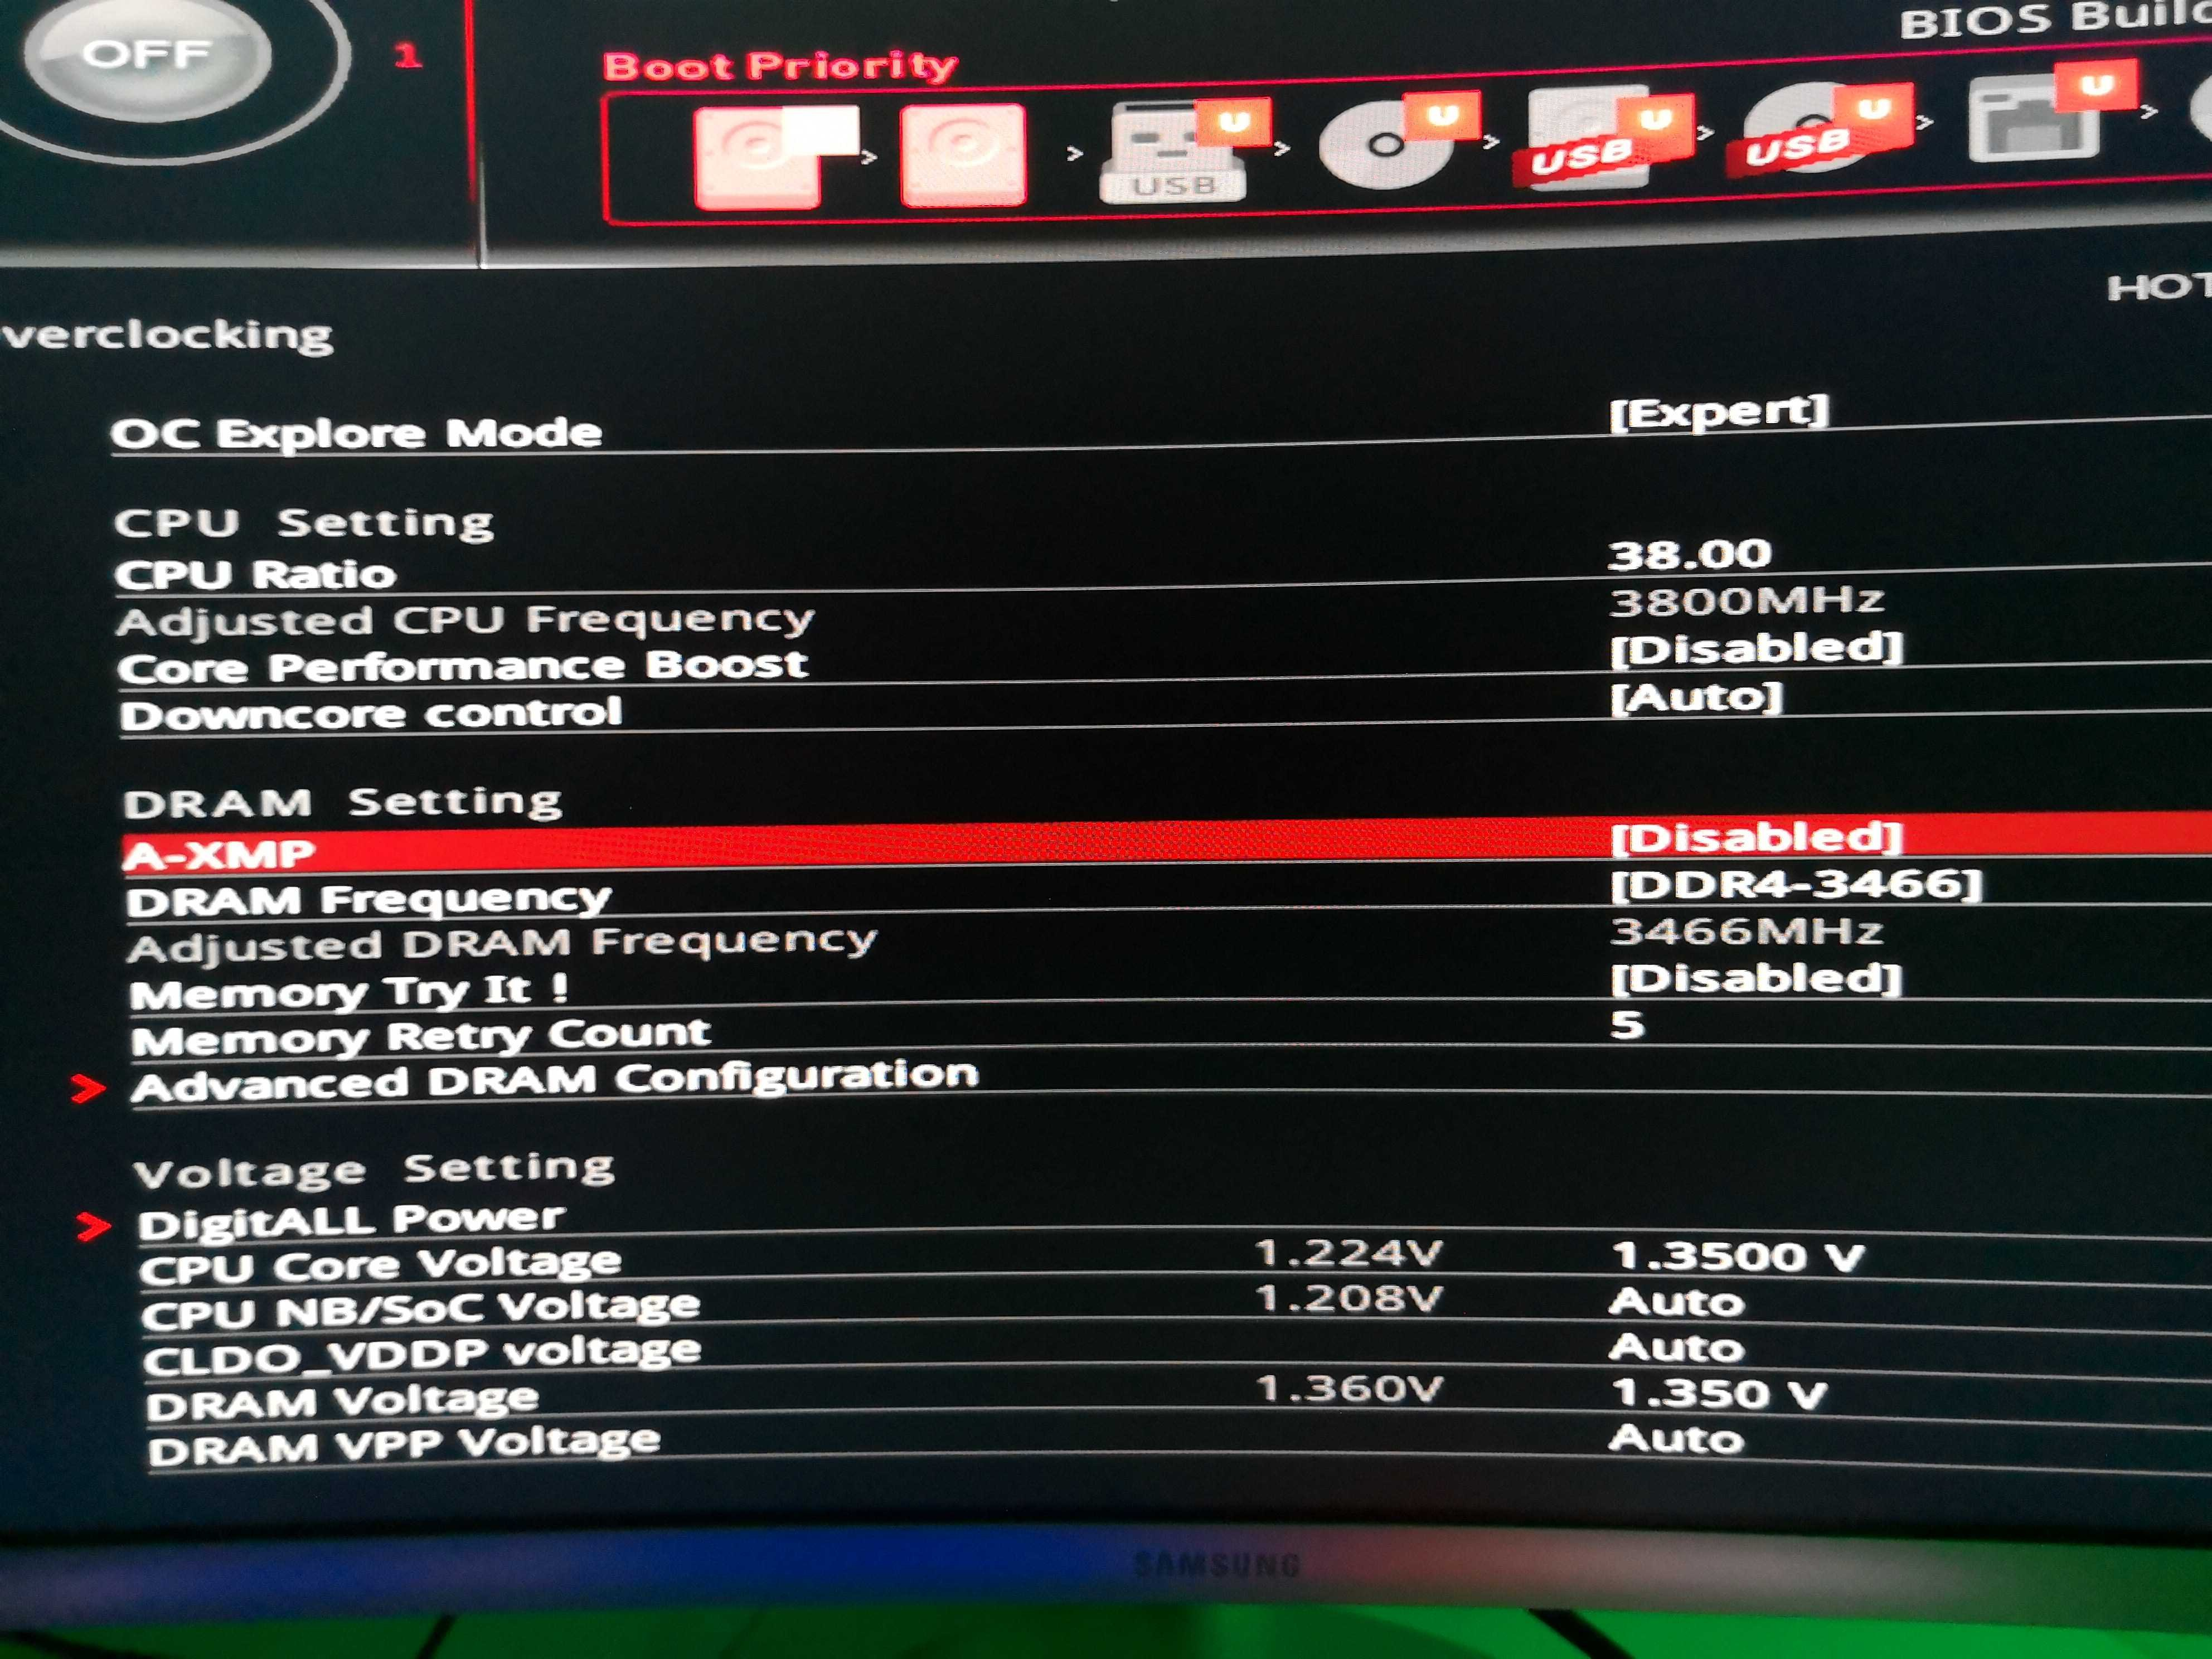 MSI X370 Gaming Pro Carbon experience - Page 43 - Overclock net - An